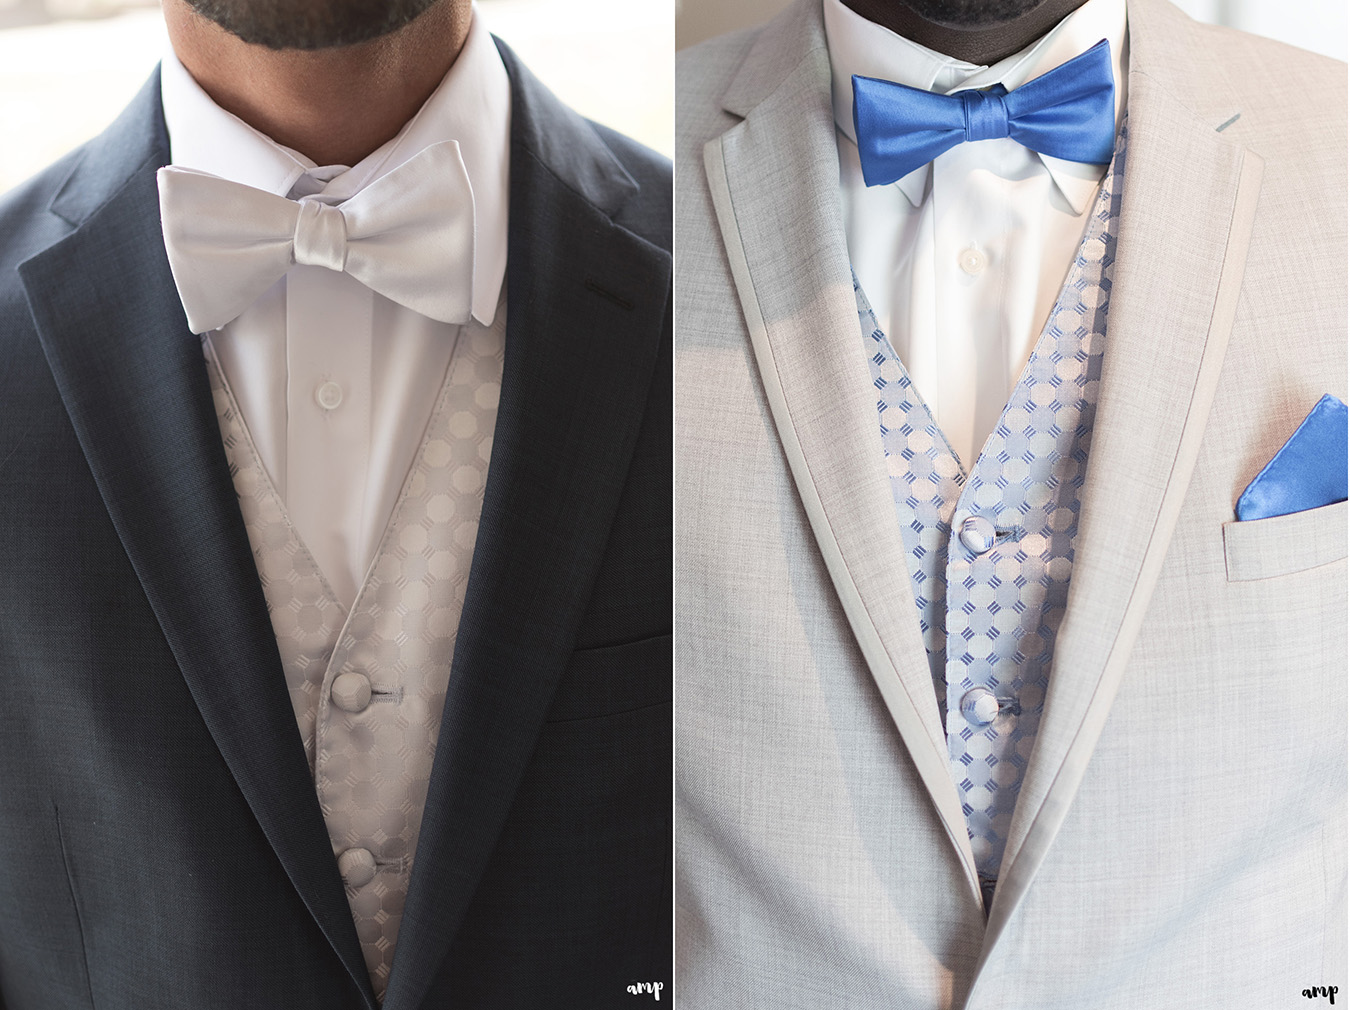 Groomsmen attire with blue and silver colors